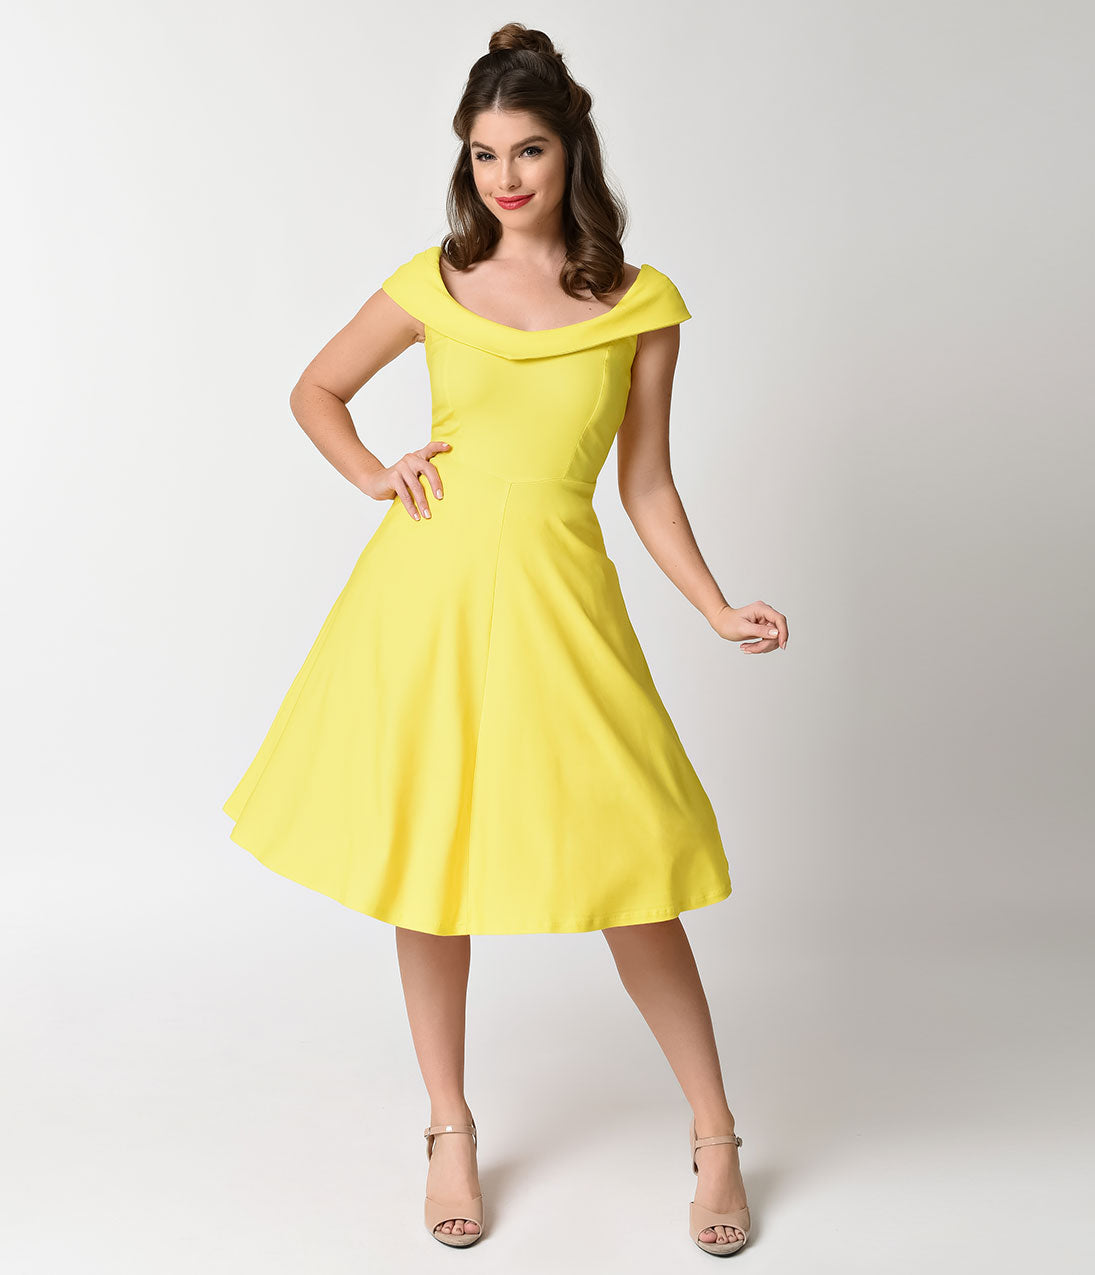 1950s Swing Dresses | 50s Swing Dress Vintage Style Yellow Stretch Cap Sleeve Swing Dress $68.00 AT vintagedancer.com